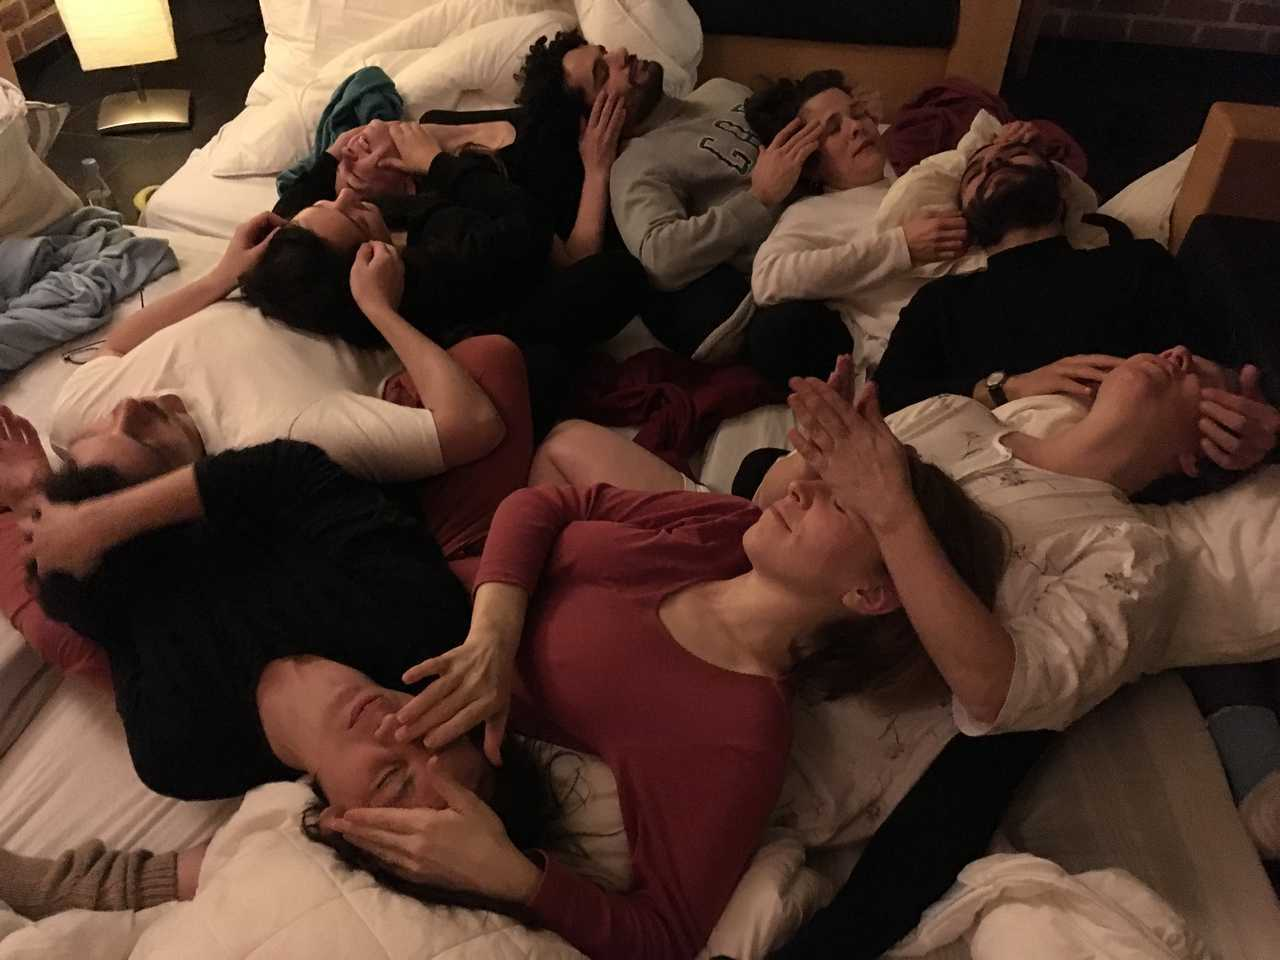 Facial massage and late night session of 'Sleeping with a Vengeance, Dreaming of a Life' a study group led by Maria Berríos, Tina Gverović and Ruth Noack,  @ Het Bovenste Bos in Epen, the Netherlands (photo credit: Leeron Tur-Kaspa, February 2018)